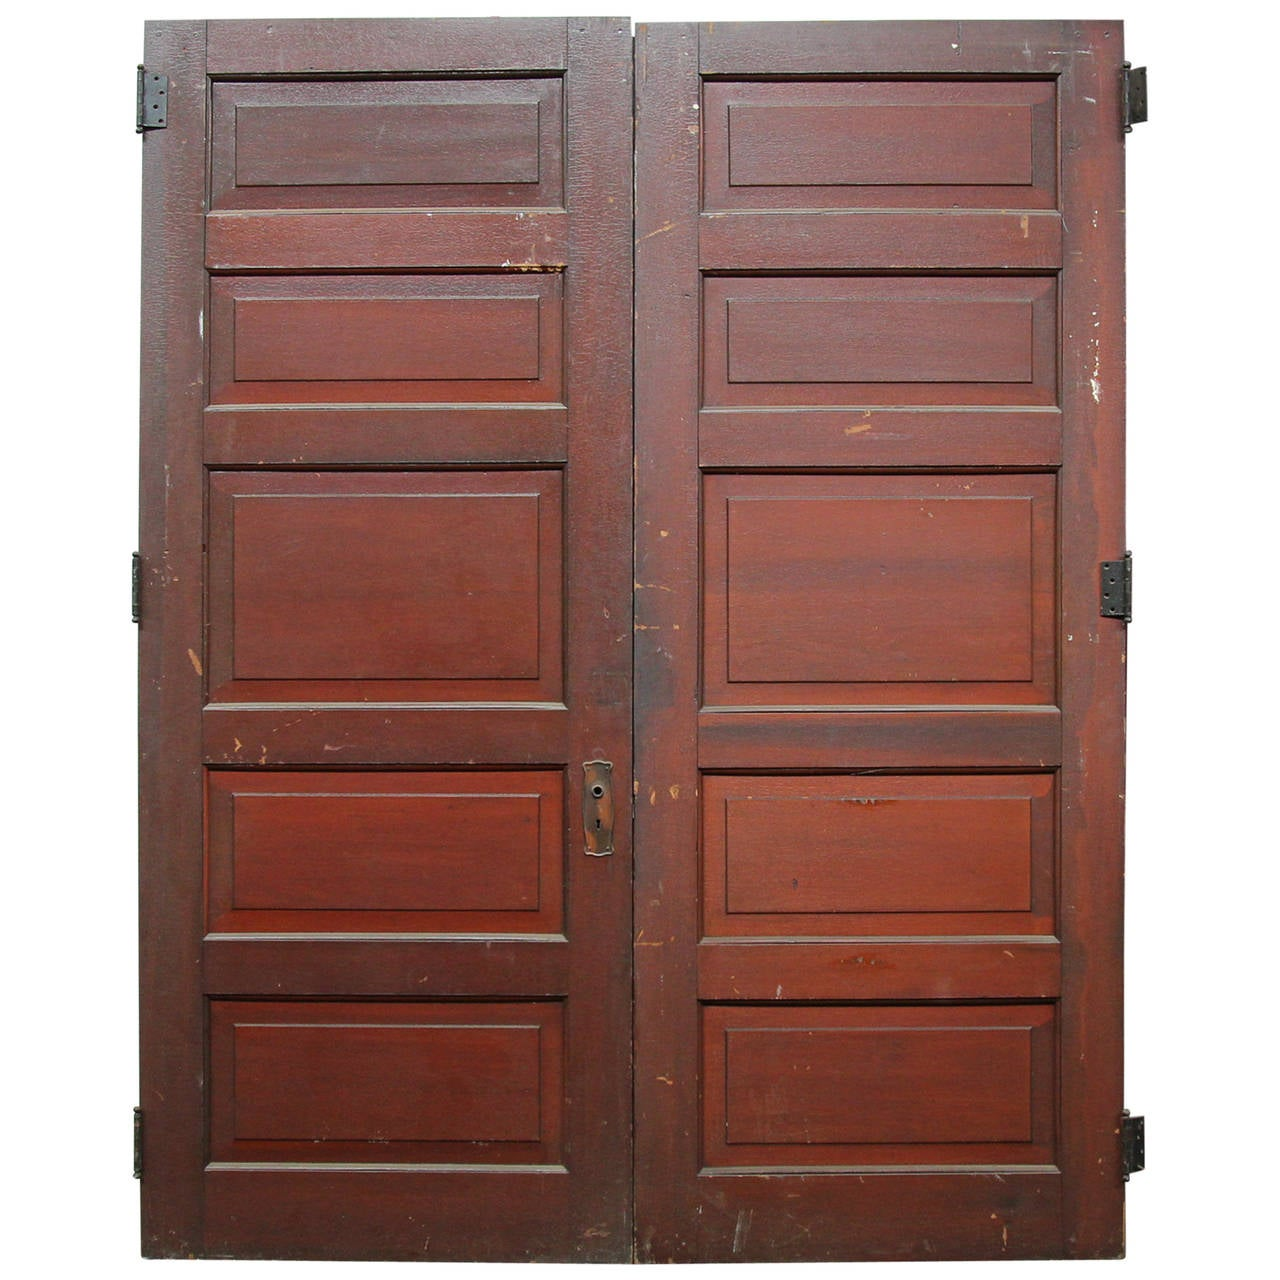 1920s Pair of Five Panel Wooden Doors with Original Fumed Copper Hardware 1